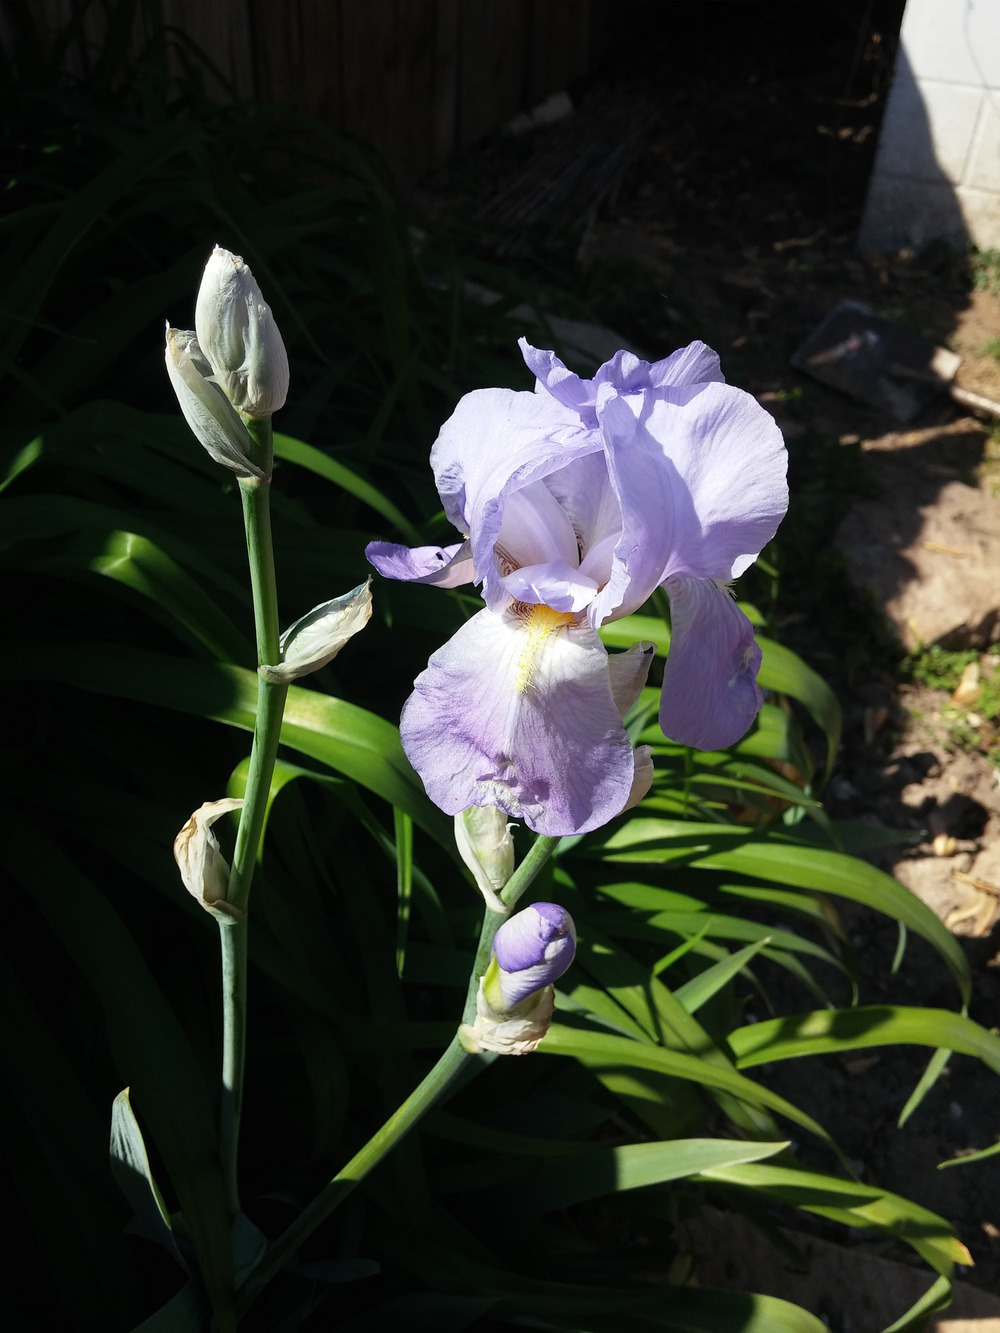 Our irises are blooming! We got them from the woods around a cabin in Steelville, where they were planted by my great-grandmother.